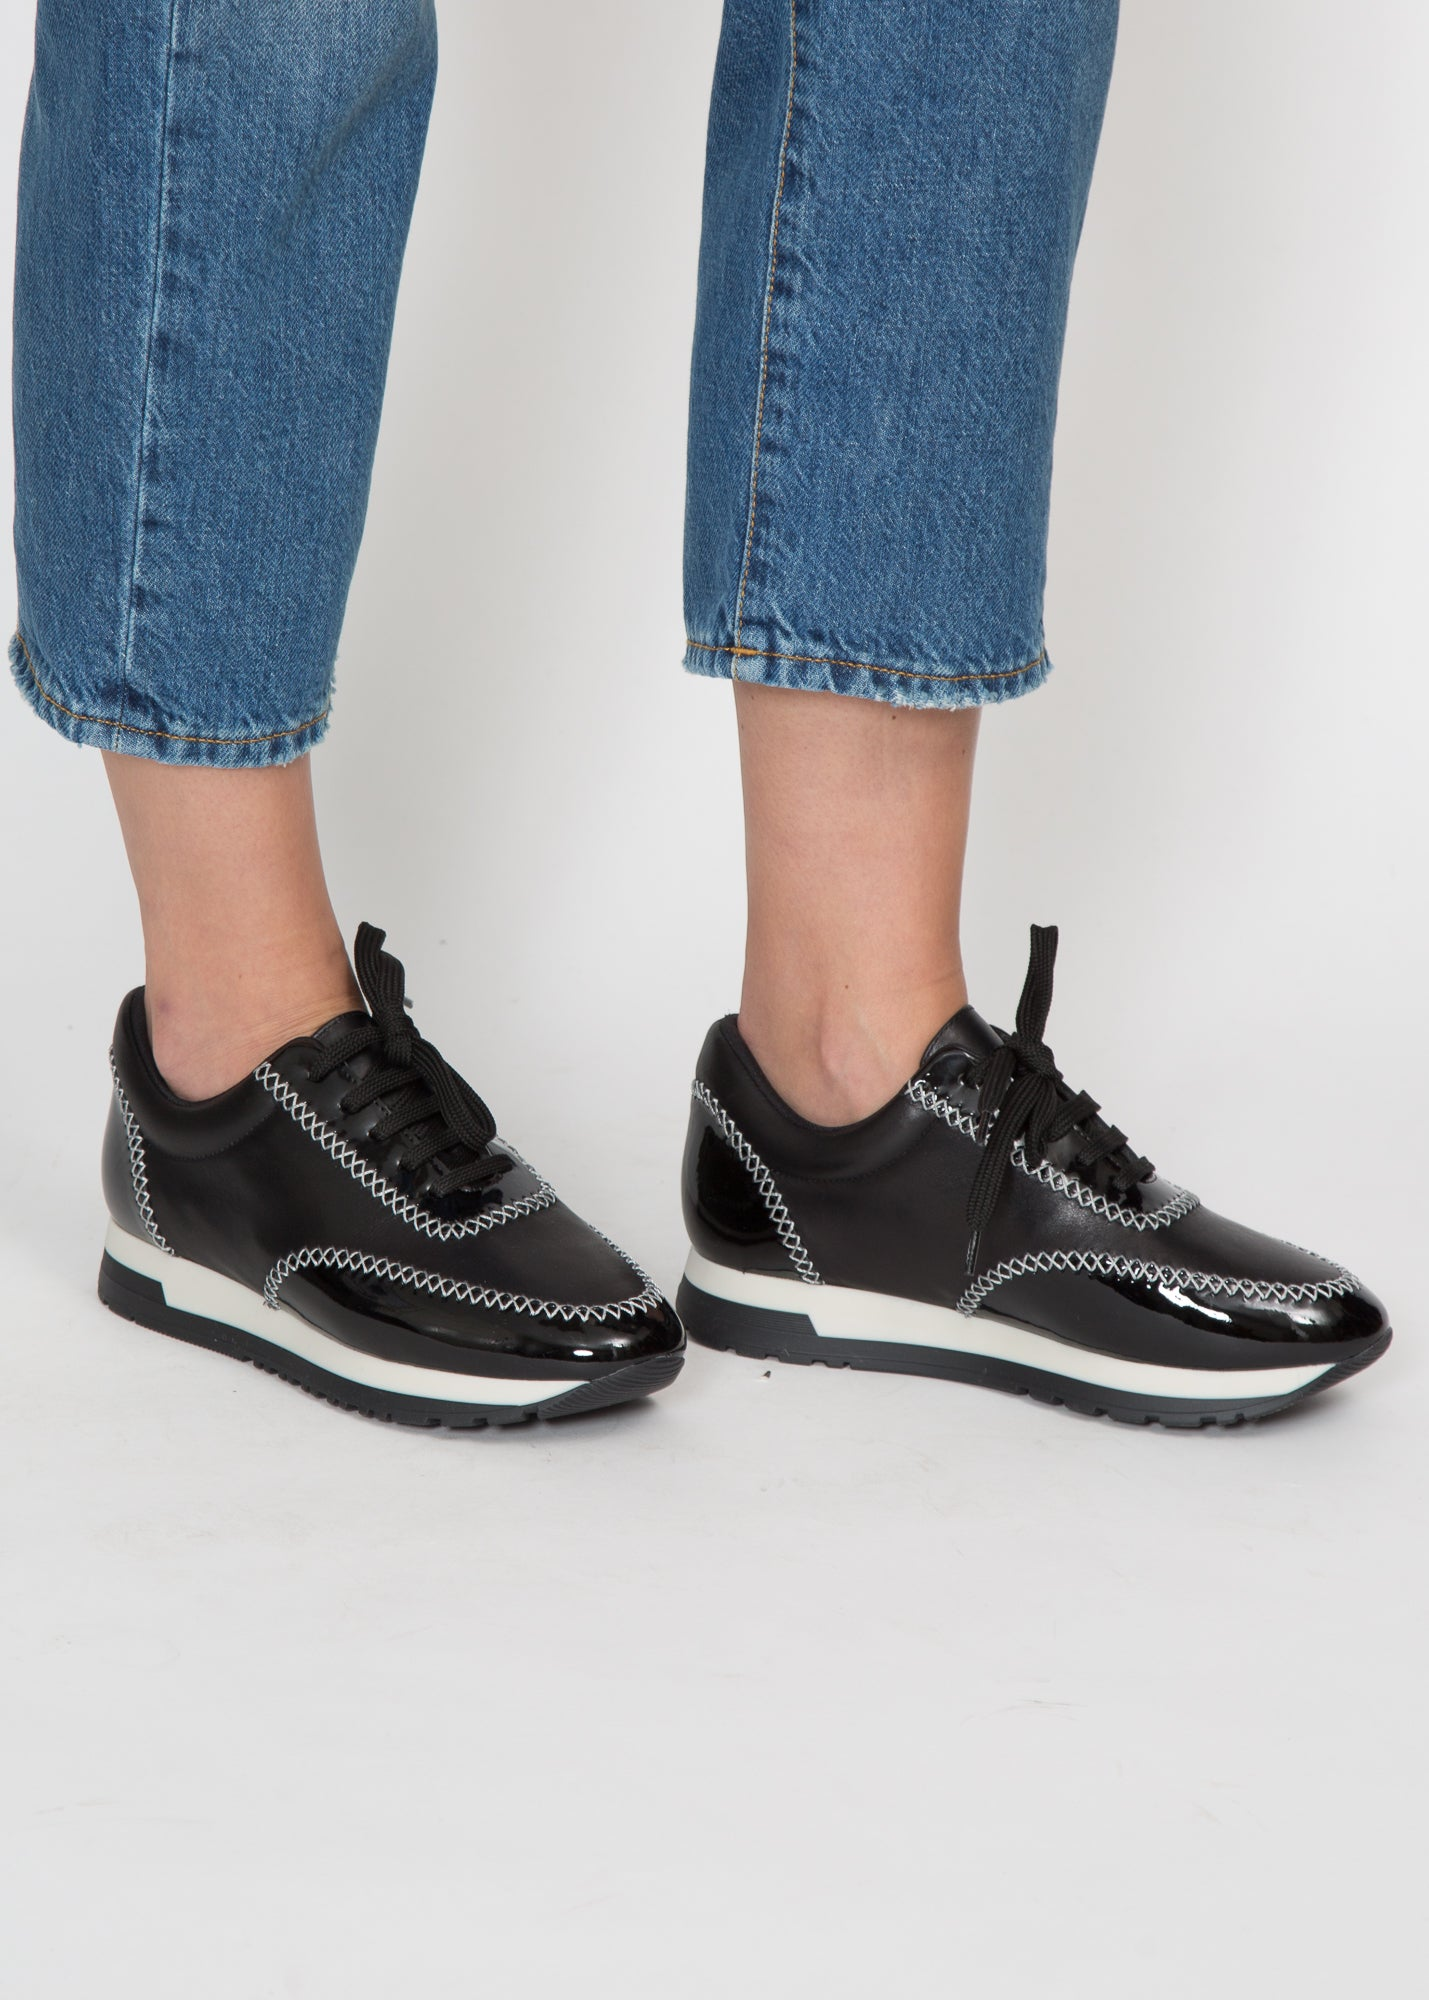 Paule Ka Stitched Leather Sneaker Matte + Patent Black